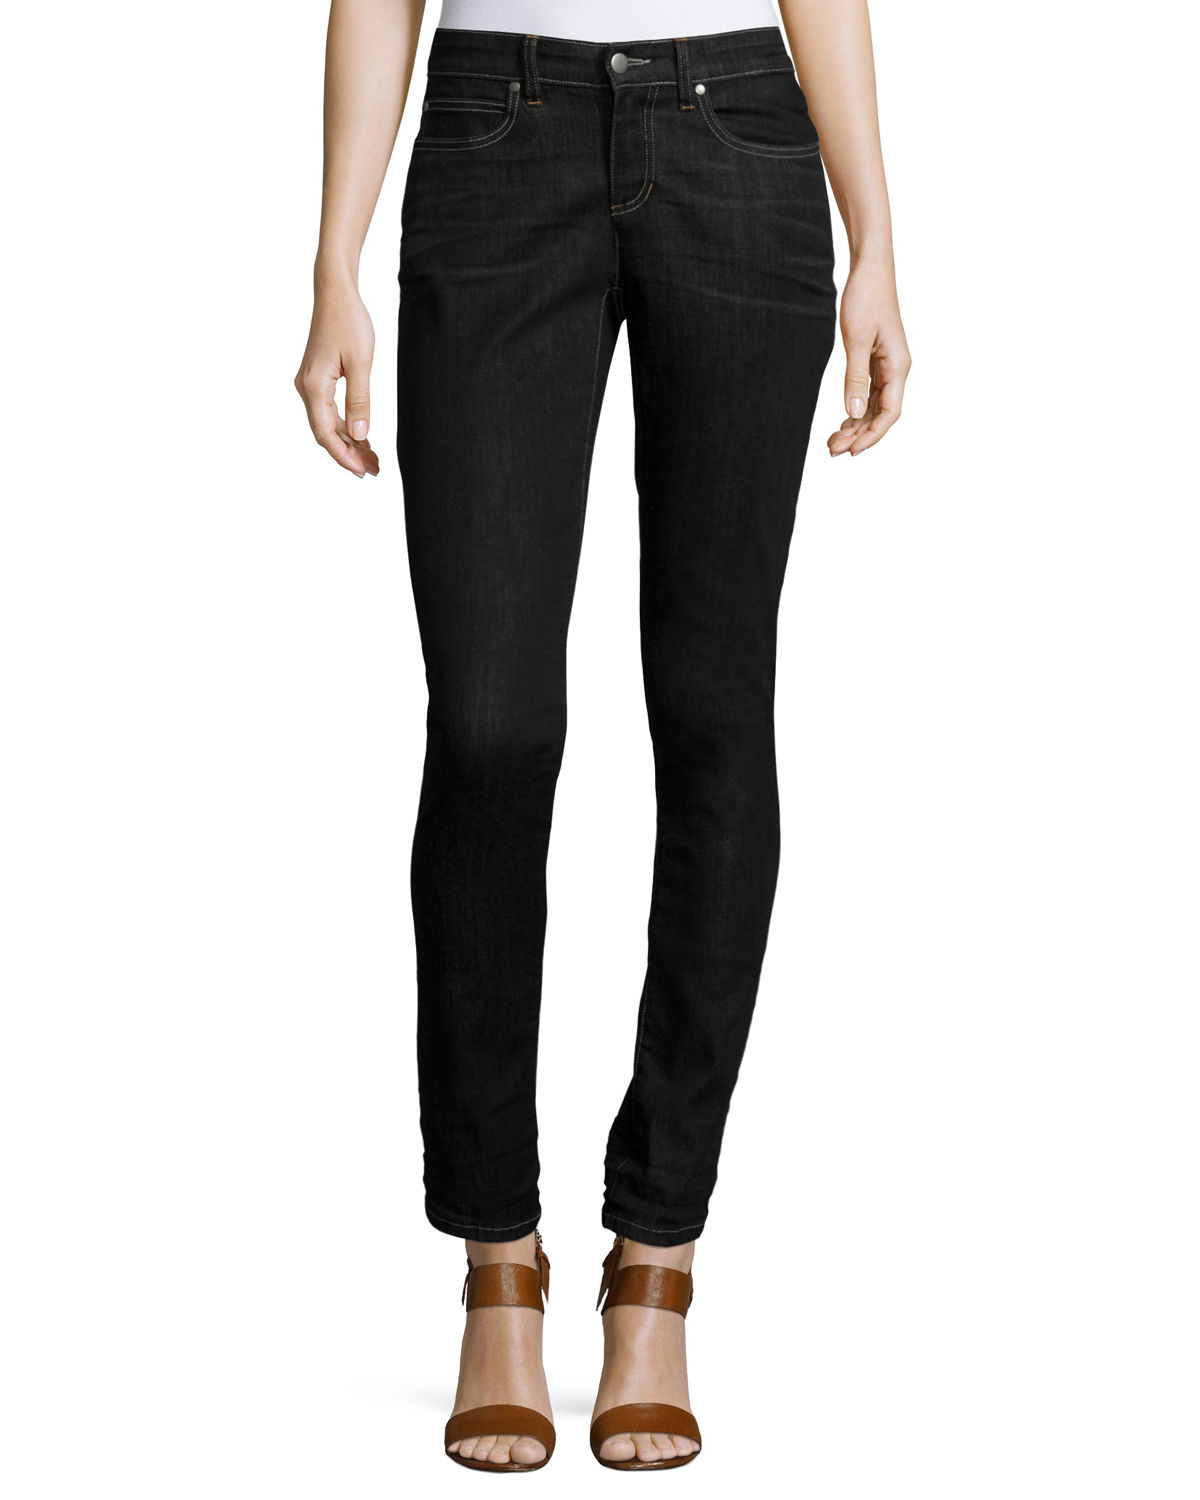 Eileen Fisher Jeans PLUS SIZE ORGANIC SOFT STRETCH SKINNY JEANS